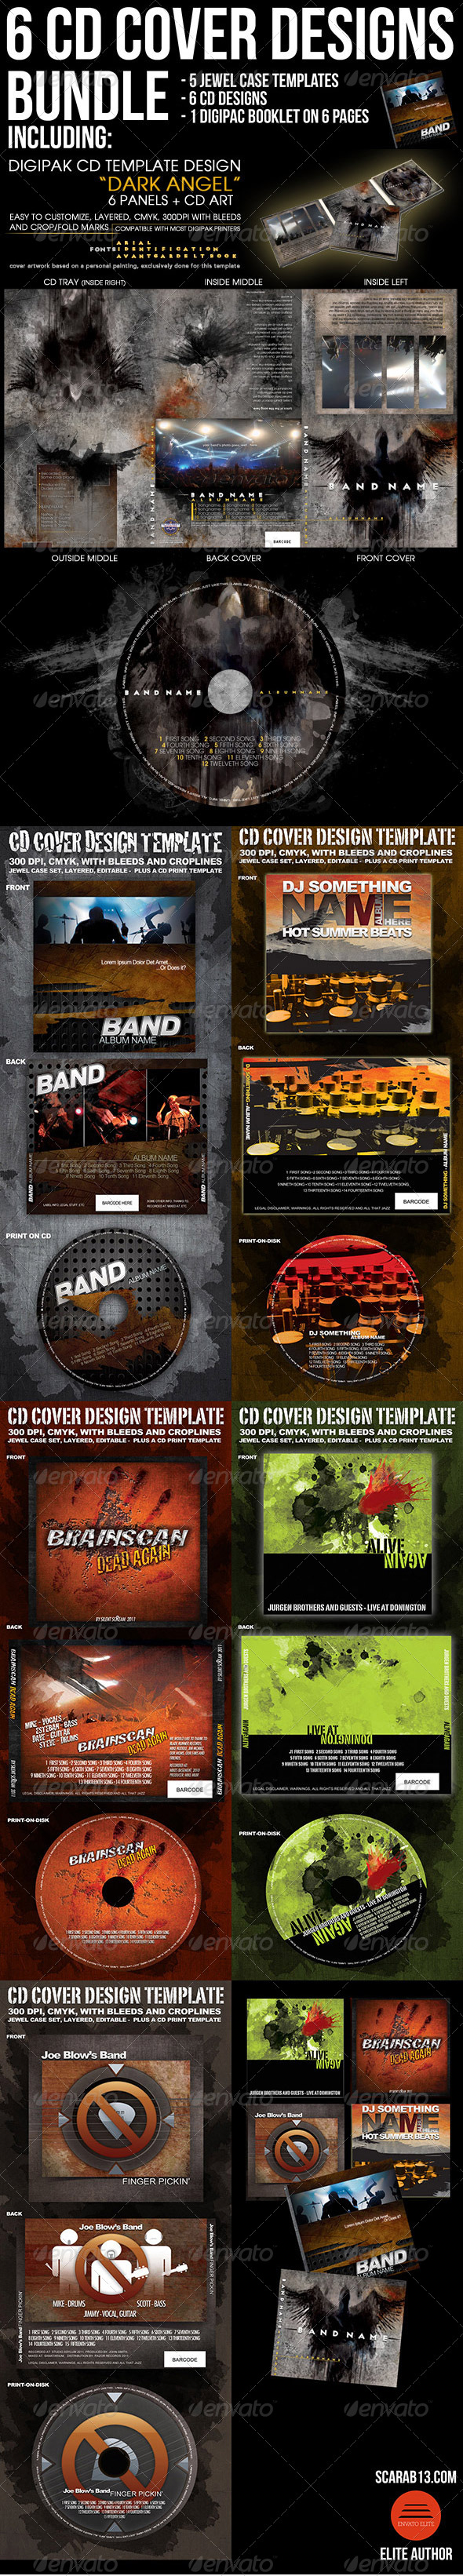 6 CD Cover Design Template Bundle - CD & DVD artwork Print Templates